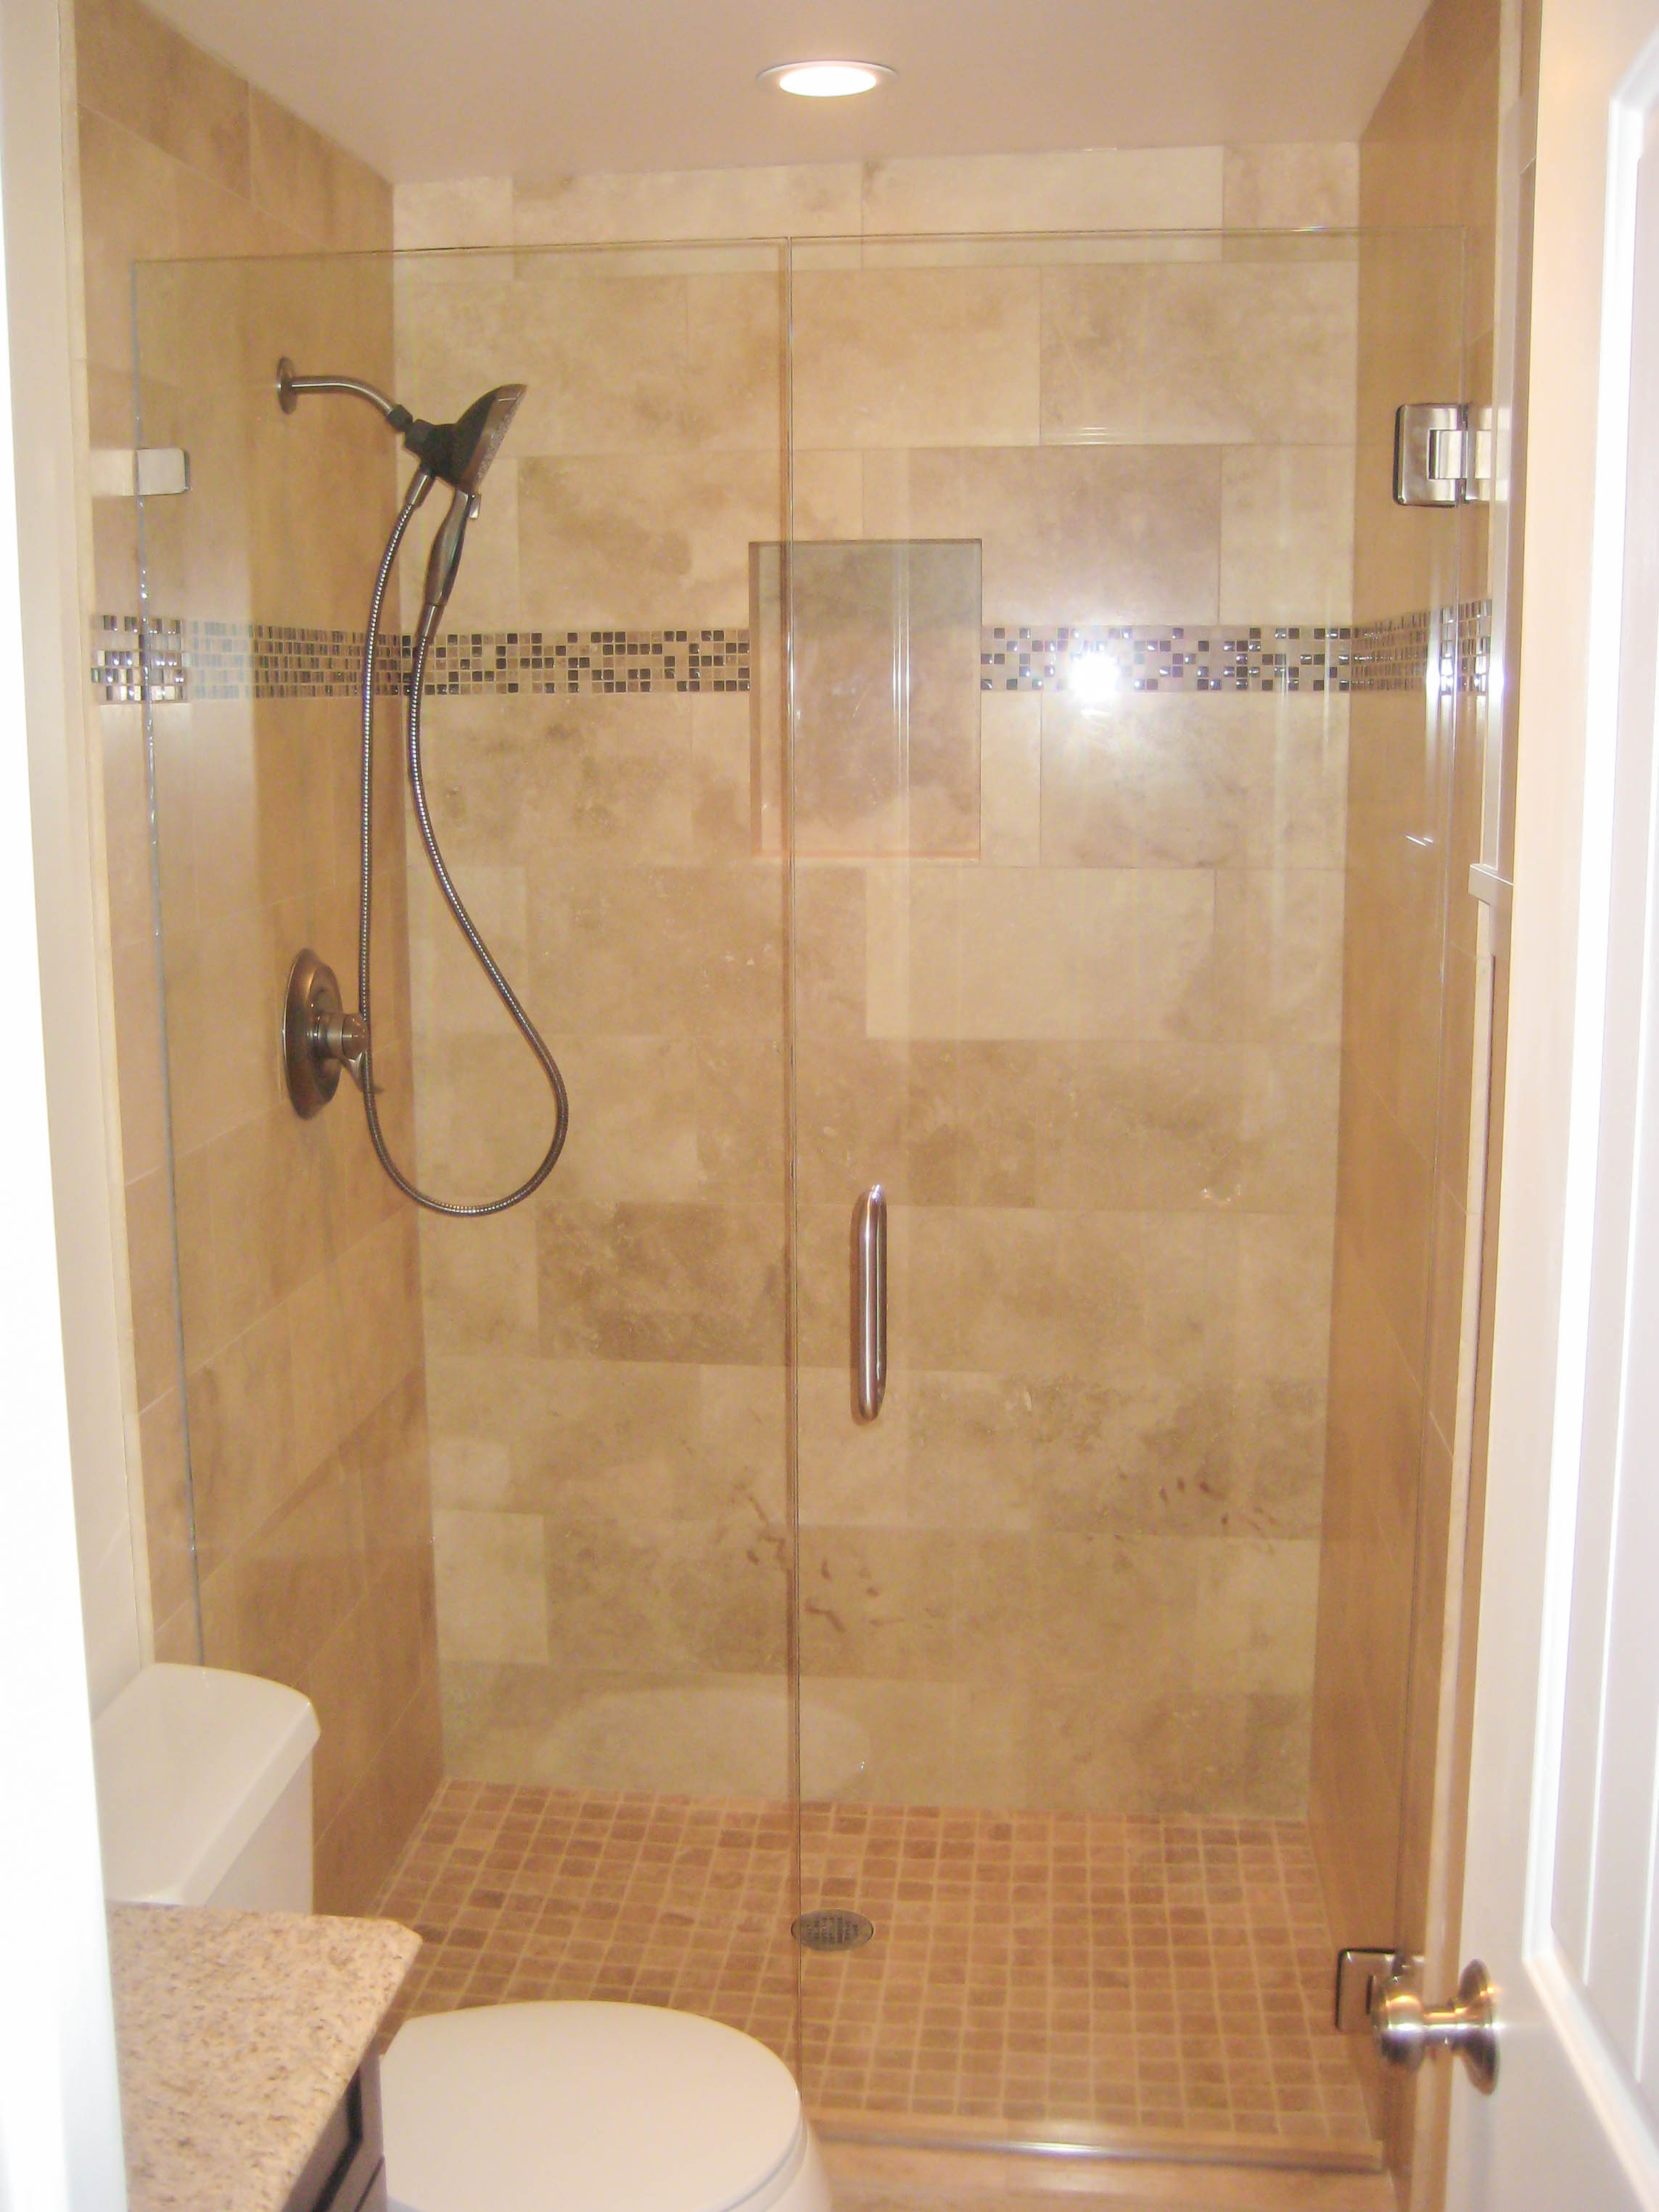 Seattle Tile Installation Tile Contractor Irc Tile Services